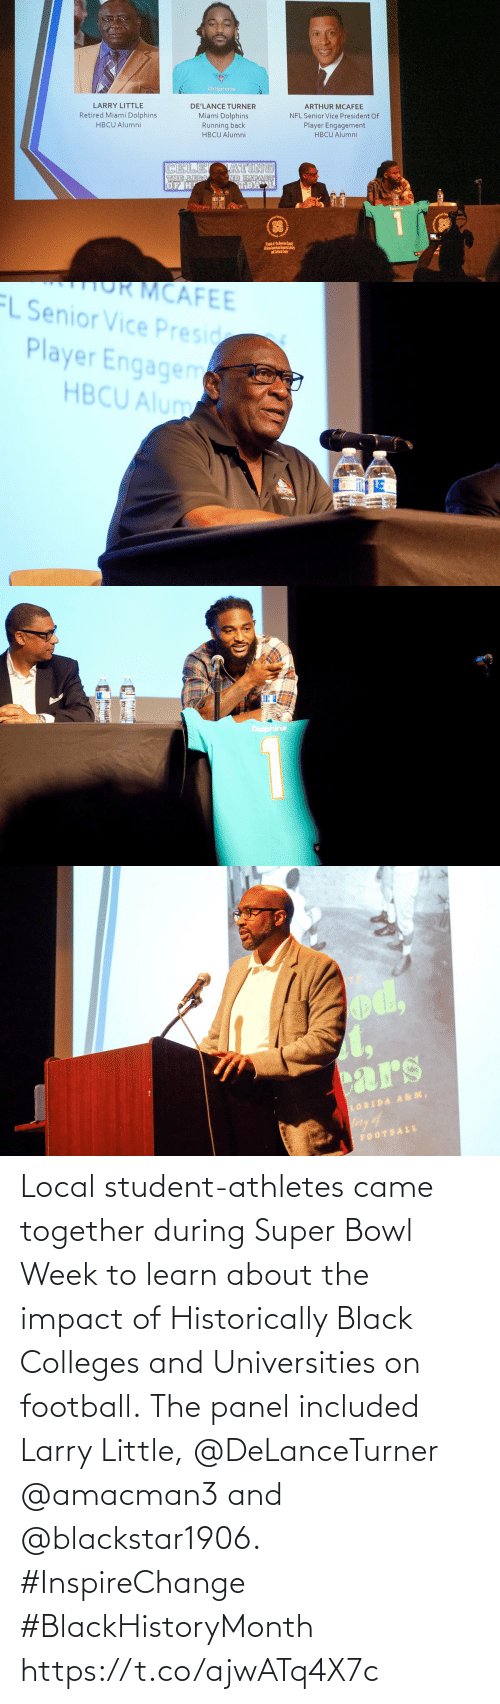 Impact Of: Local student-athletes came together during Super Bowl Week to learn about the impact of Historically Black Colleges and Universities on football.  The panel included Larry Little, @DeLanceTurner @amacman3 and @blackstar1906. #InspireChange #BlackHistoryMonth https://t.co/ajwATq4X7c